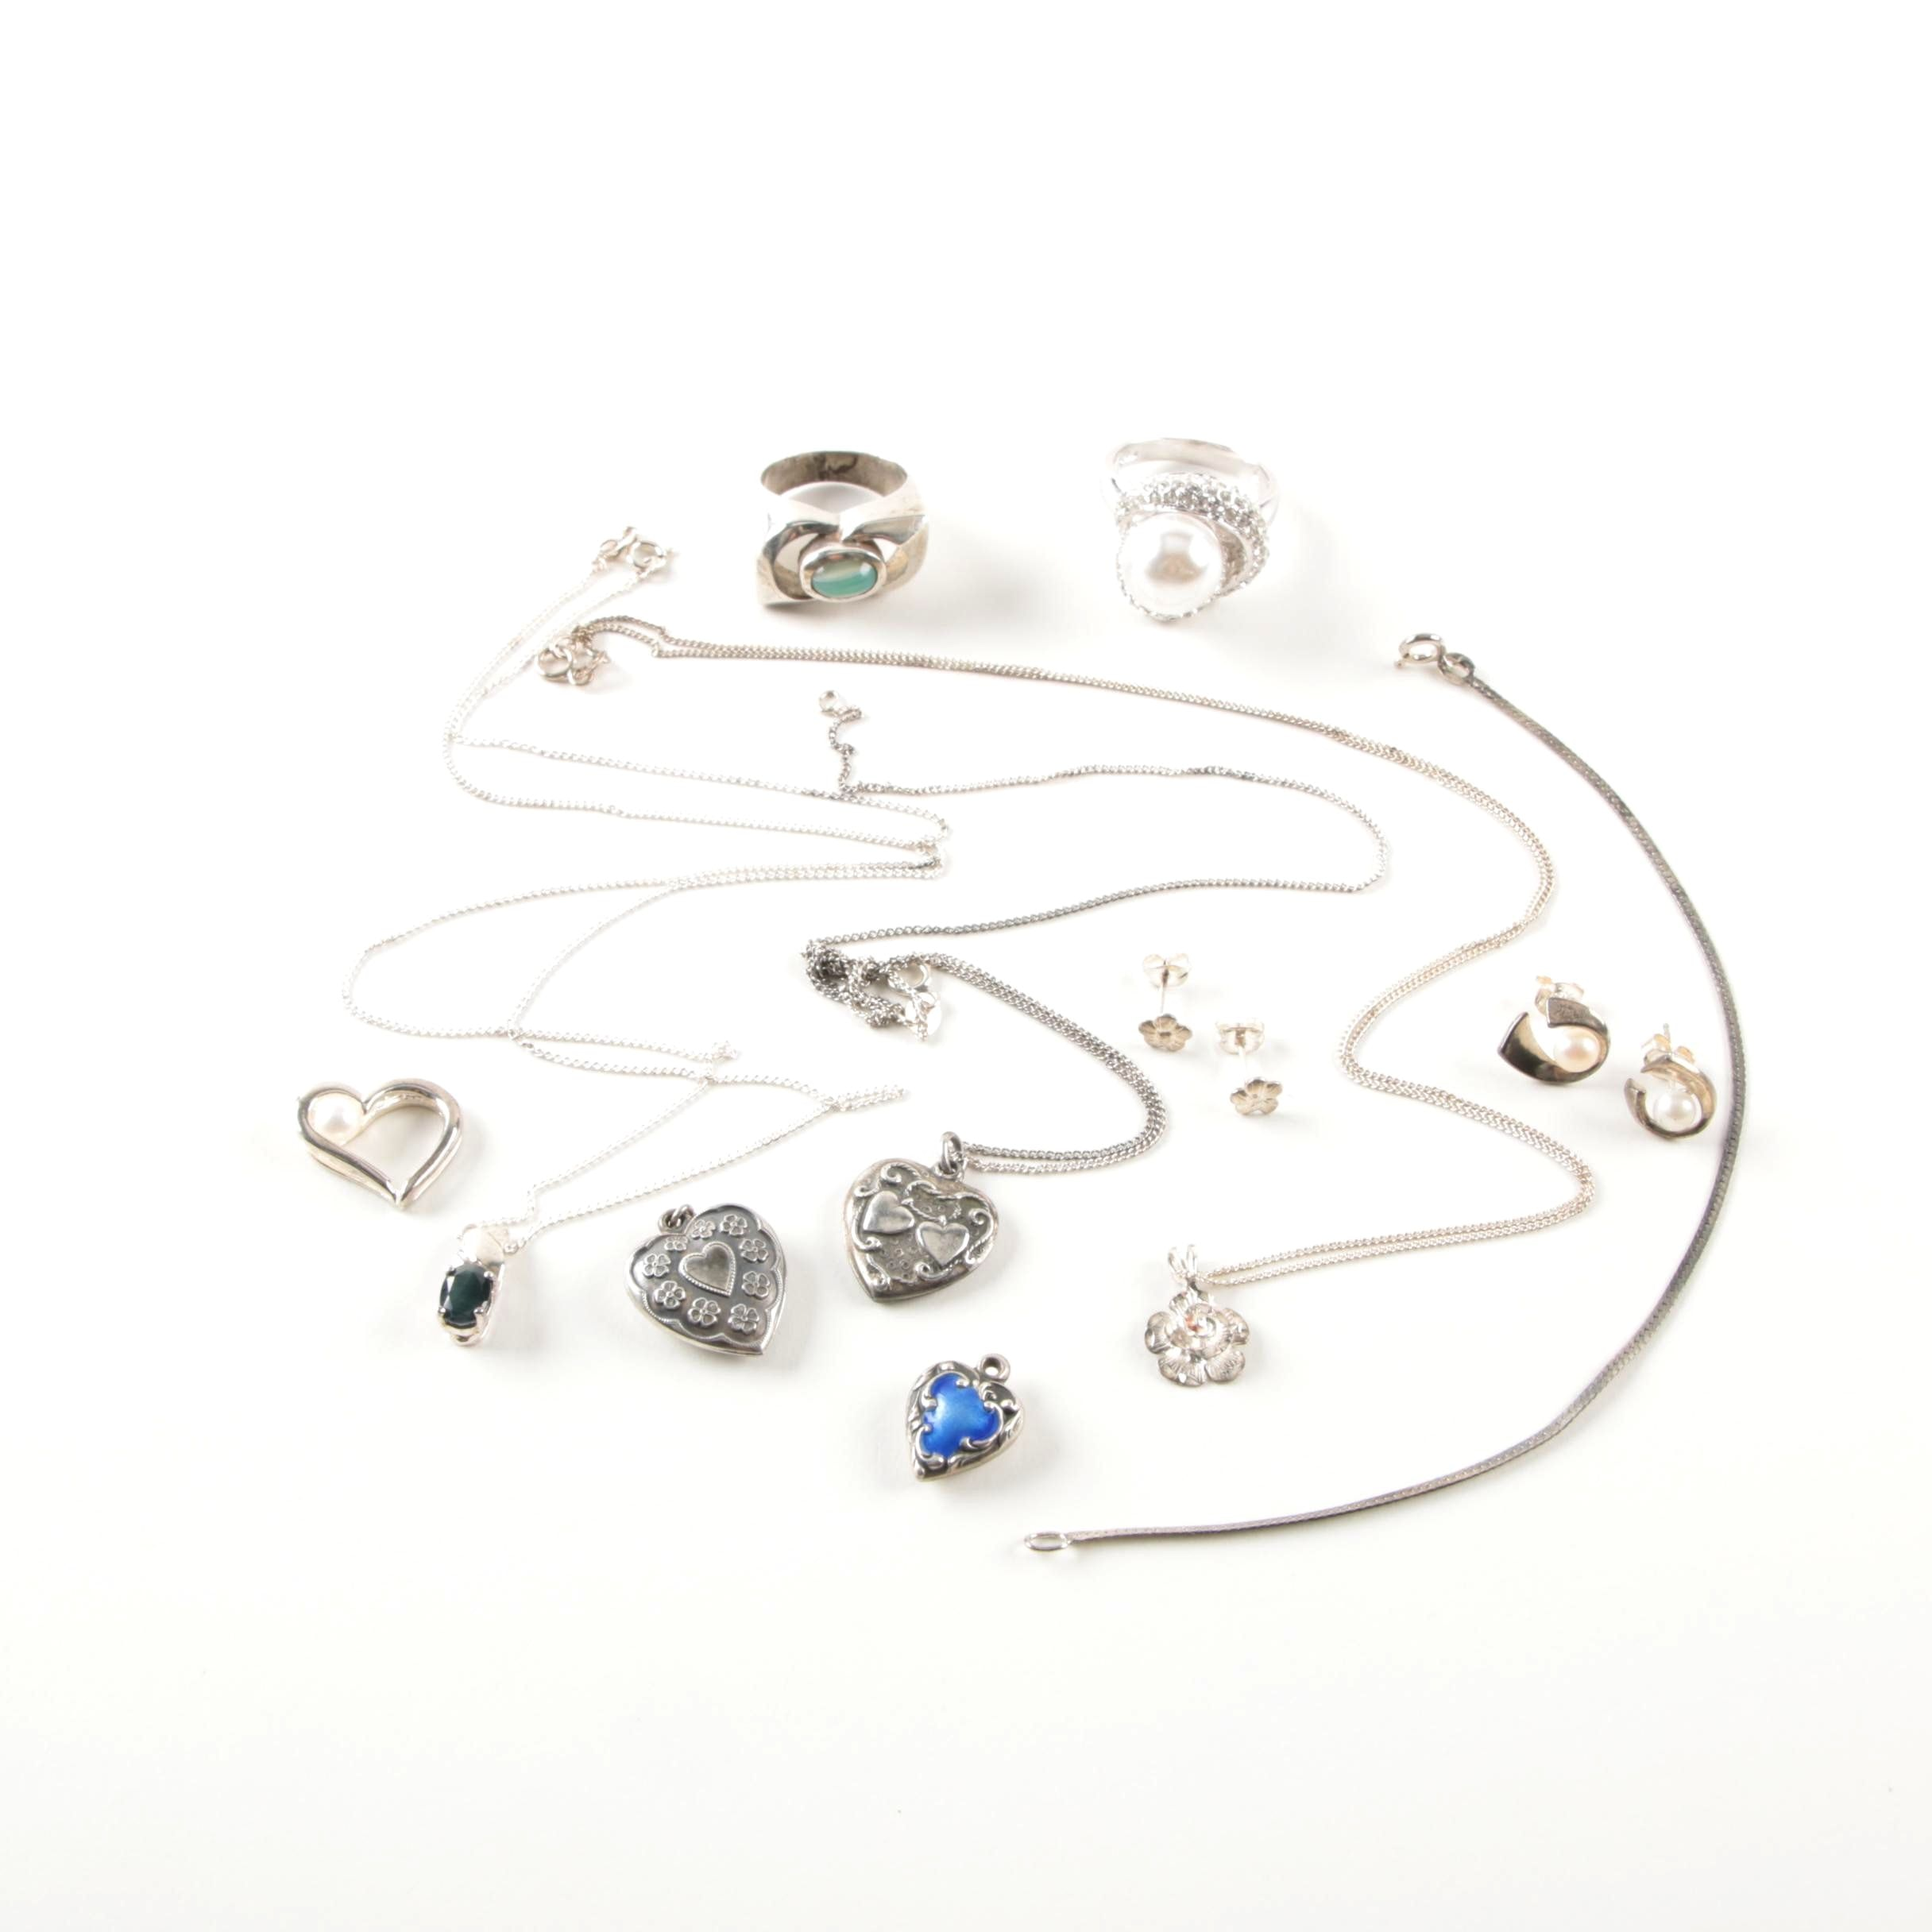 Sterling Silver and Gemstone Jewelry Including a Walter Lampl Pendant